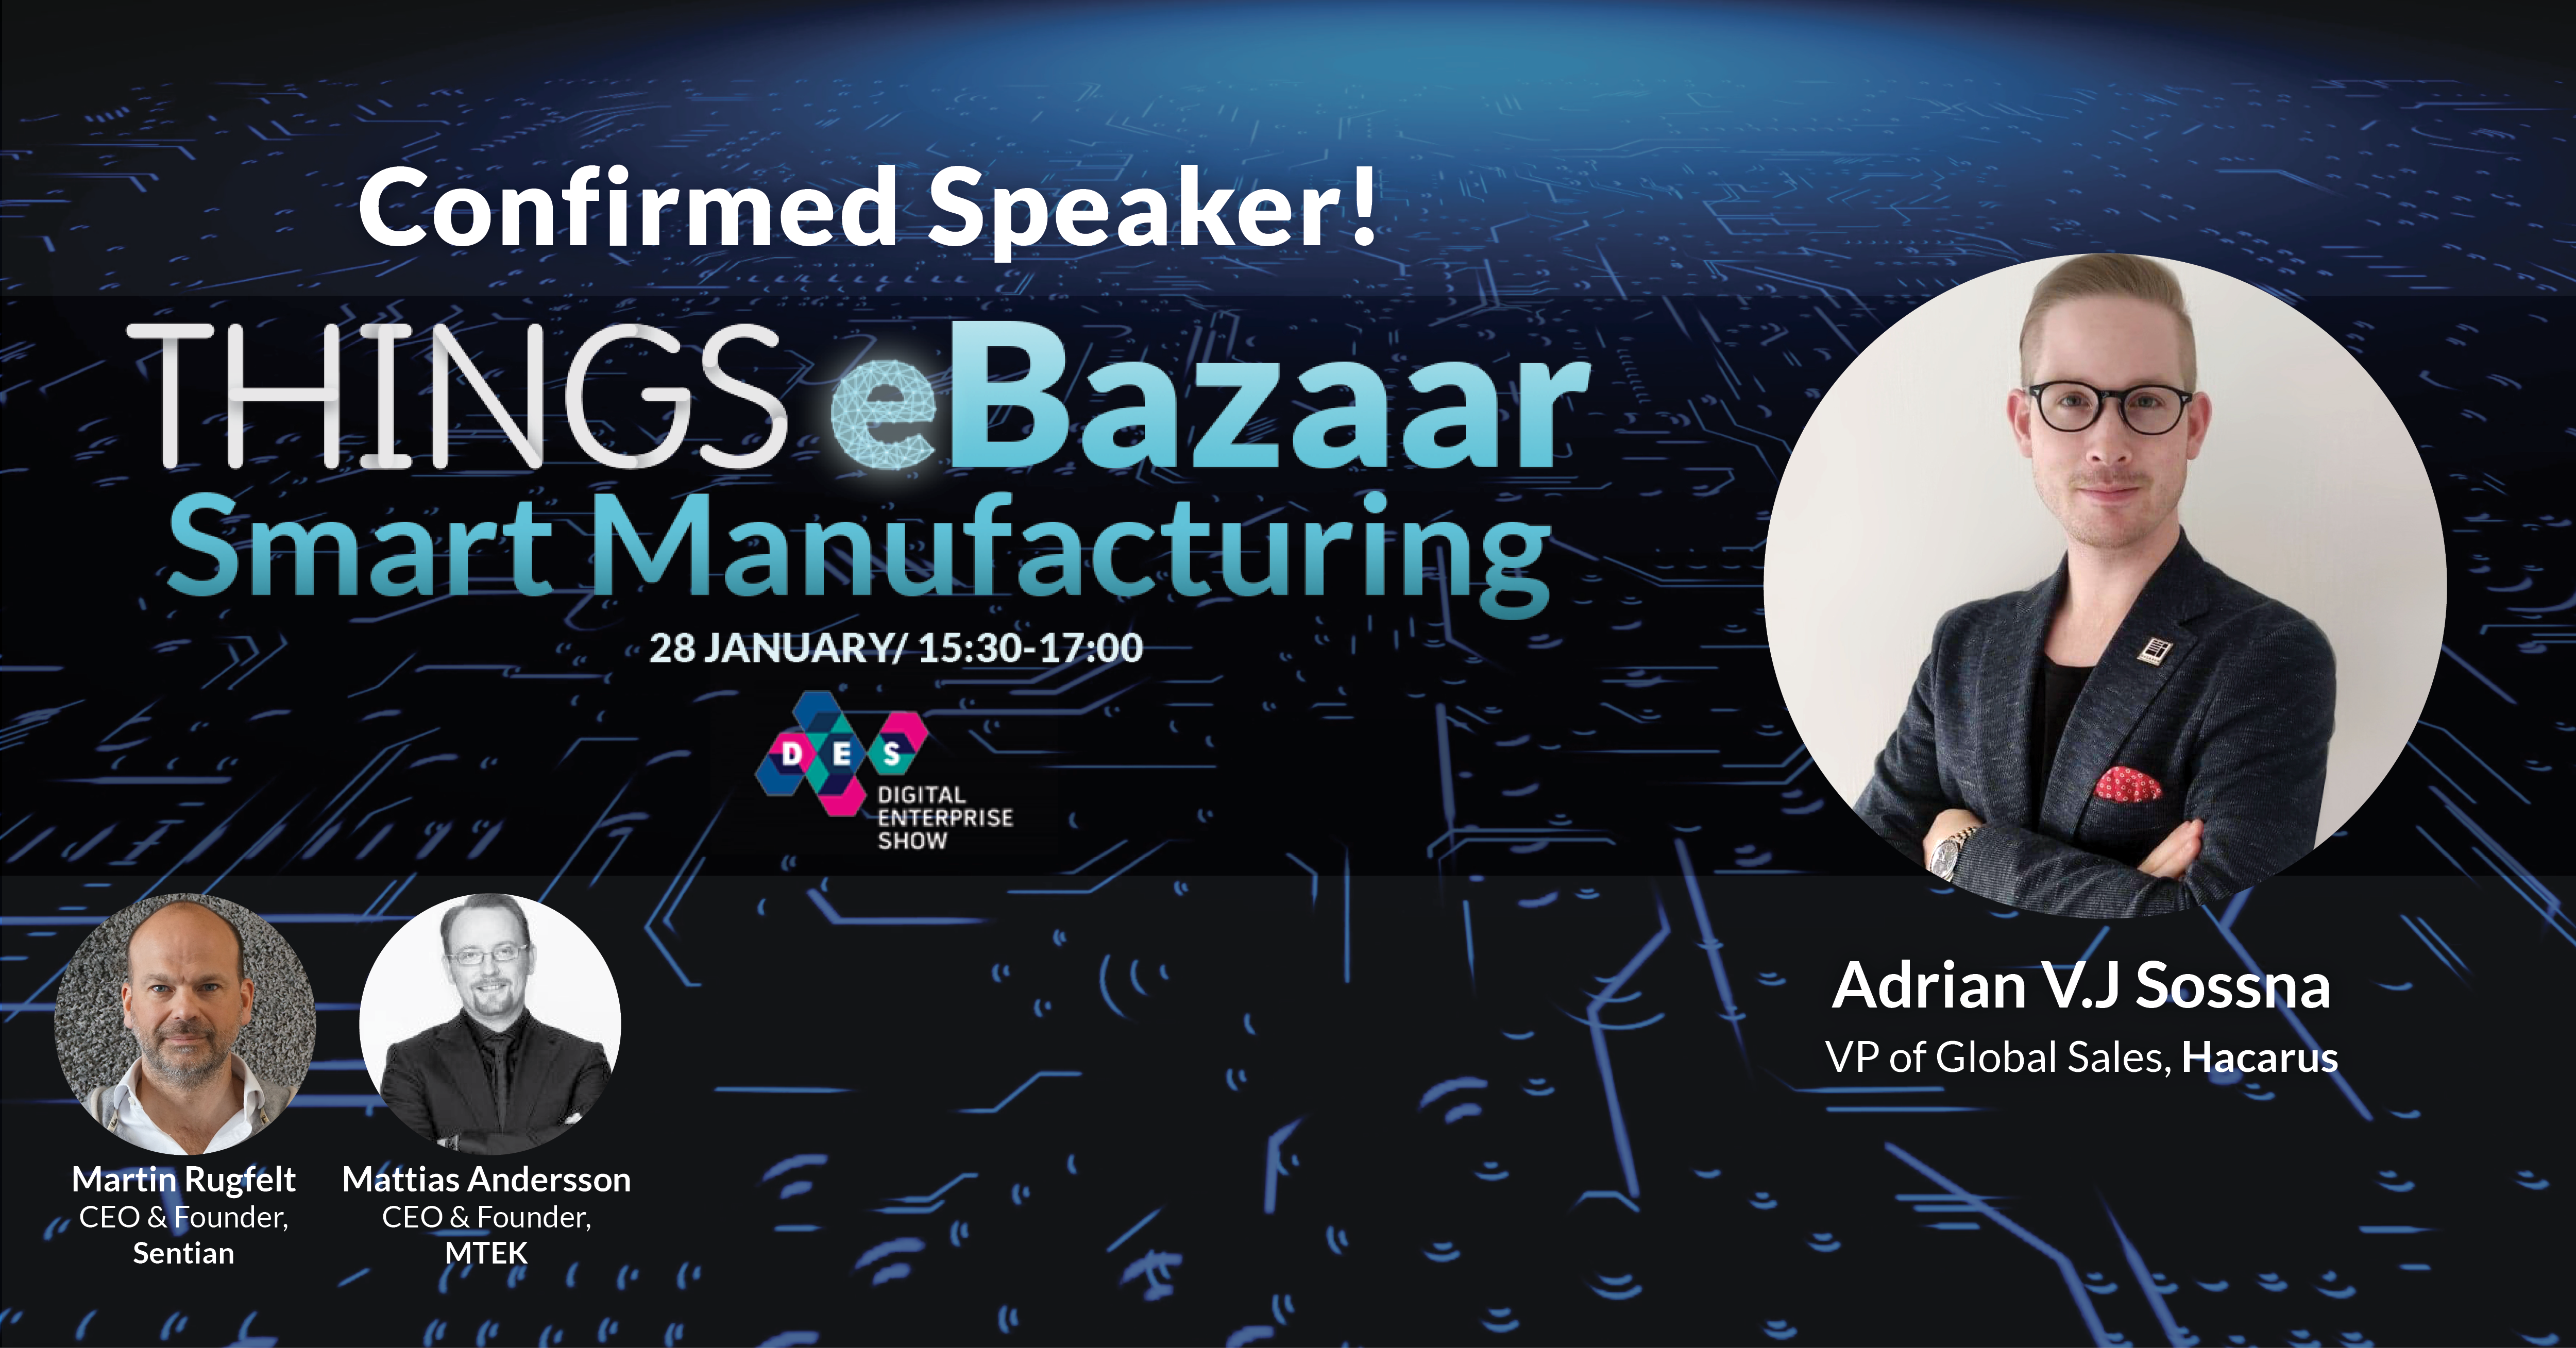 HACARUS Will Appear At THINGS EBazaar™ Smart Manufacturing Event